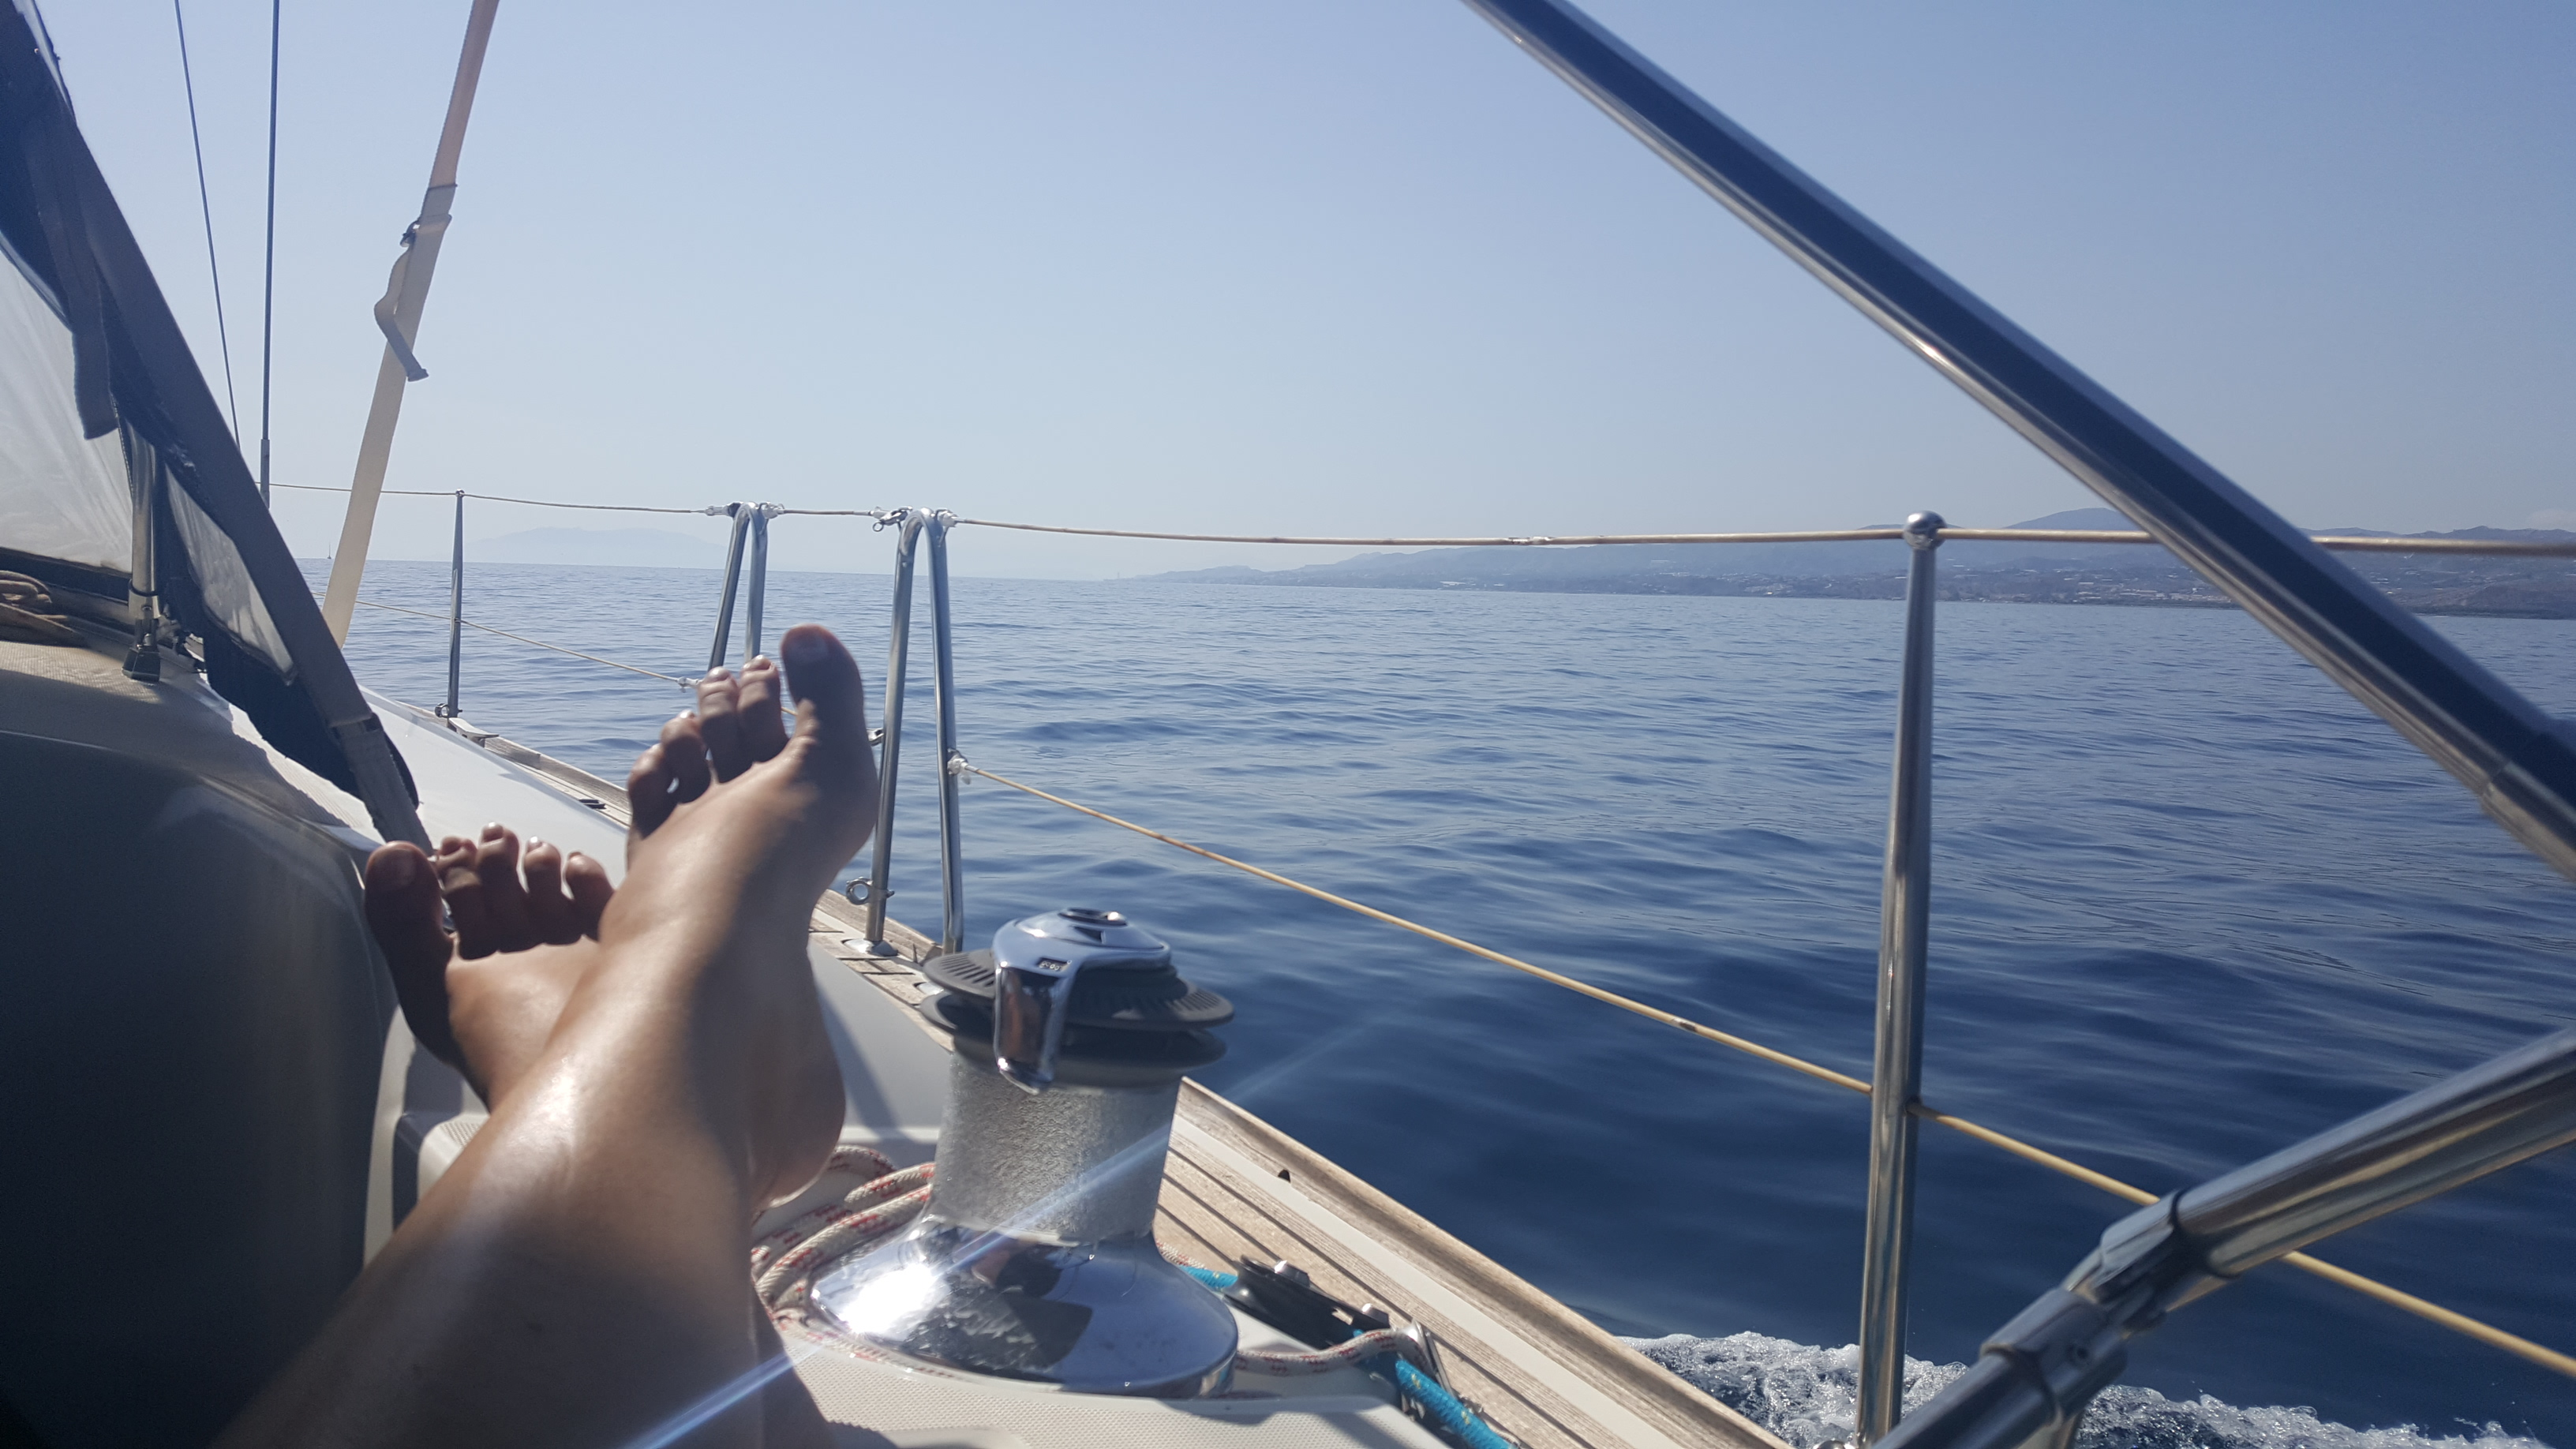 My feet up on deck, as we cruise along the southern Spanish coast, the sea is a gorgeous bright blue and the sun is streaming down